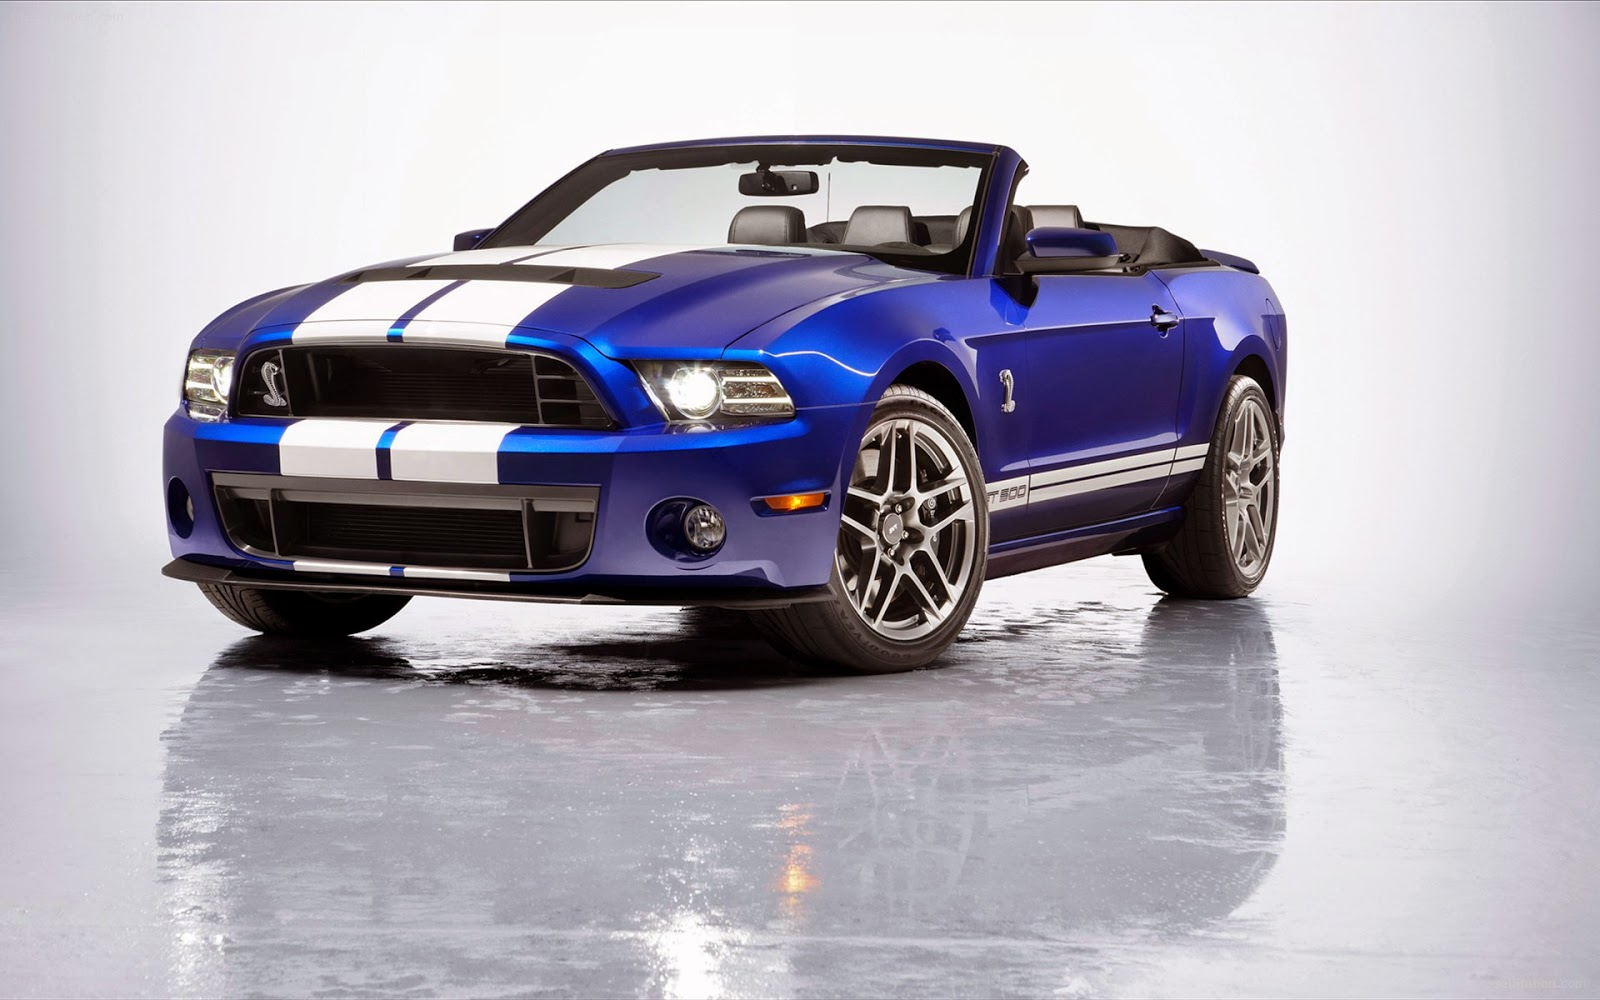 http://www.autocarsinfo.com/2014/10/2013-ford-shelby-mustang-gt500.html